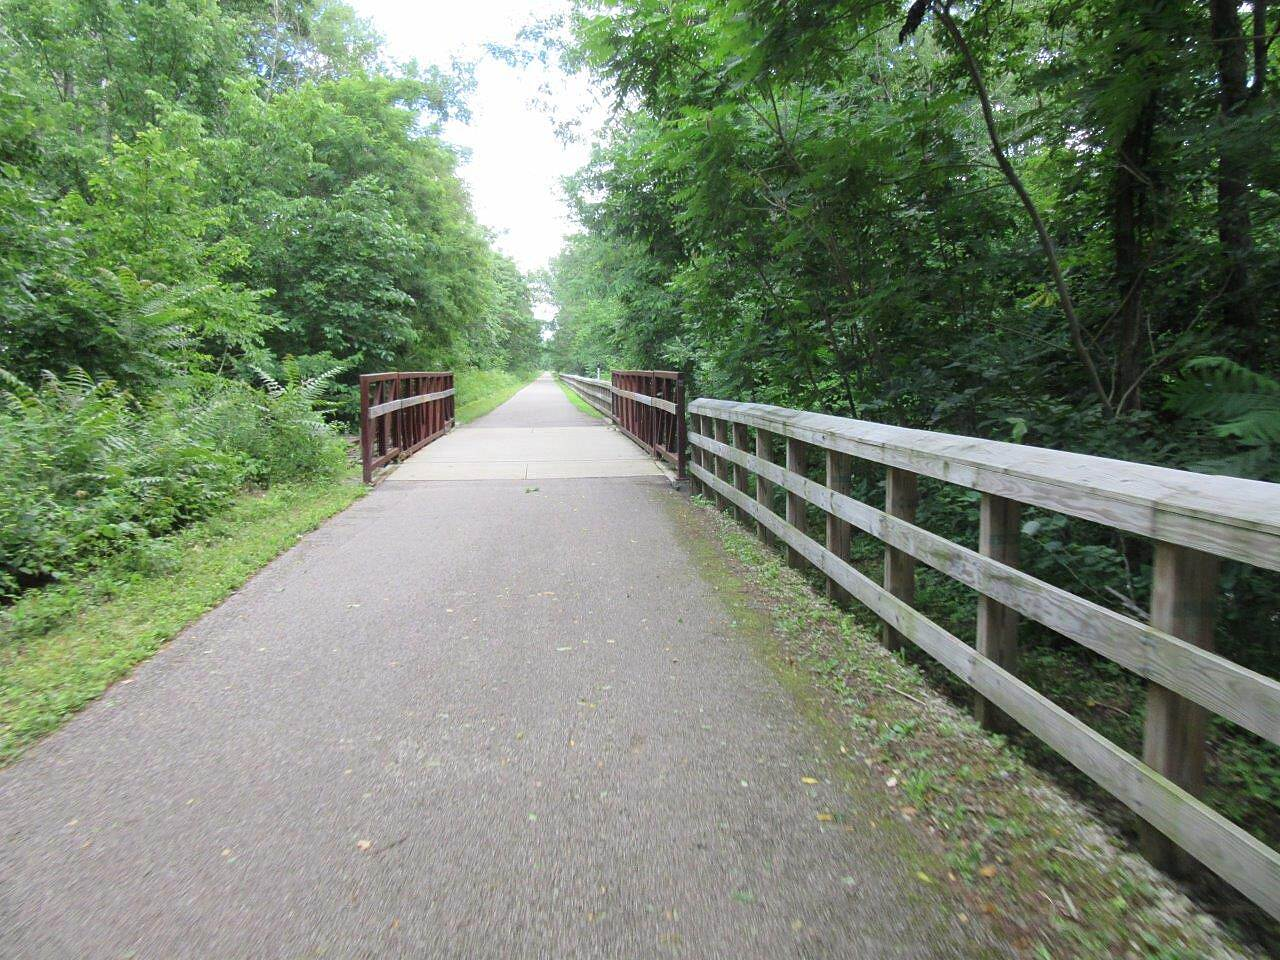 Freedom Trail (OH) Riding along the trail-June, 2017 Enjoying a nice ride along the trail